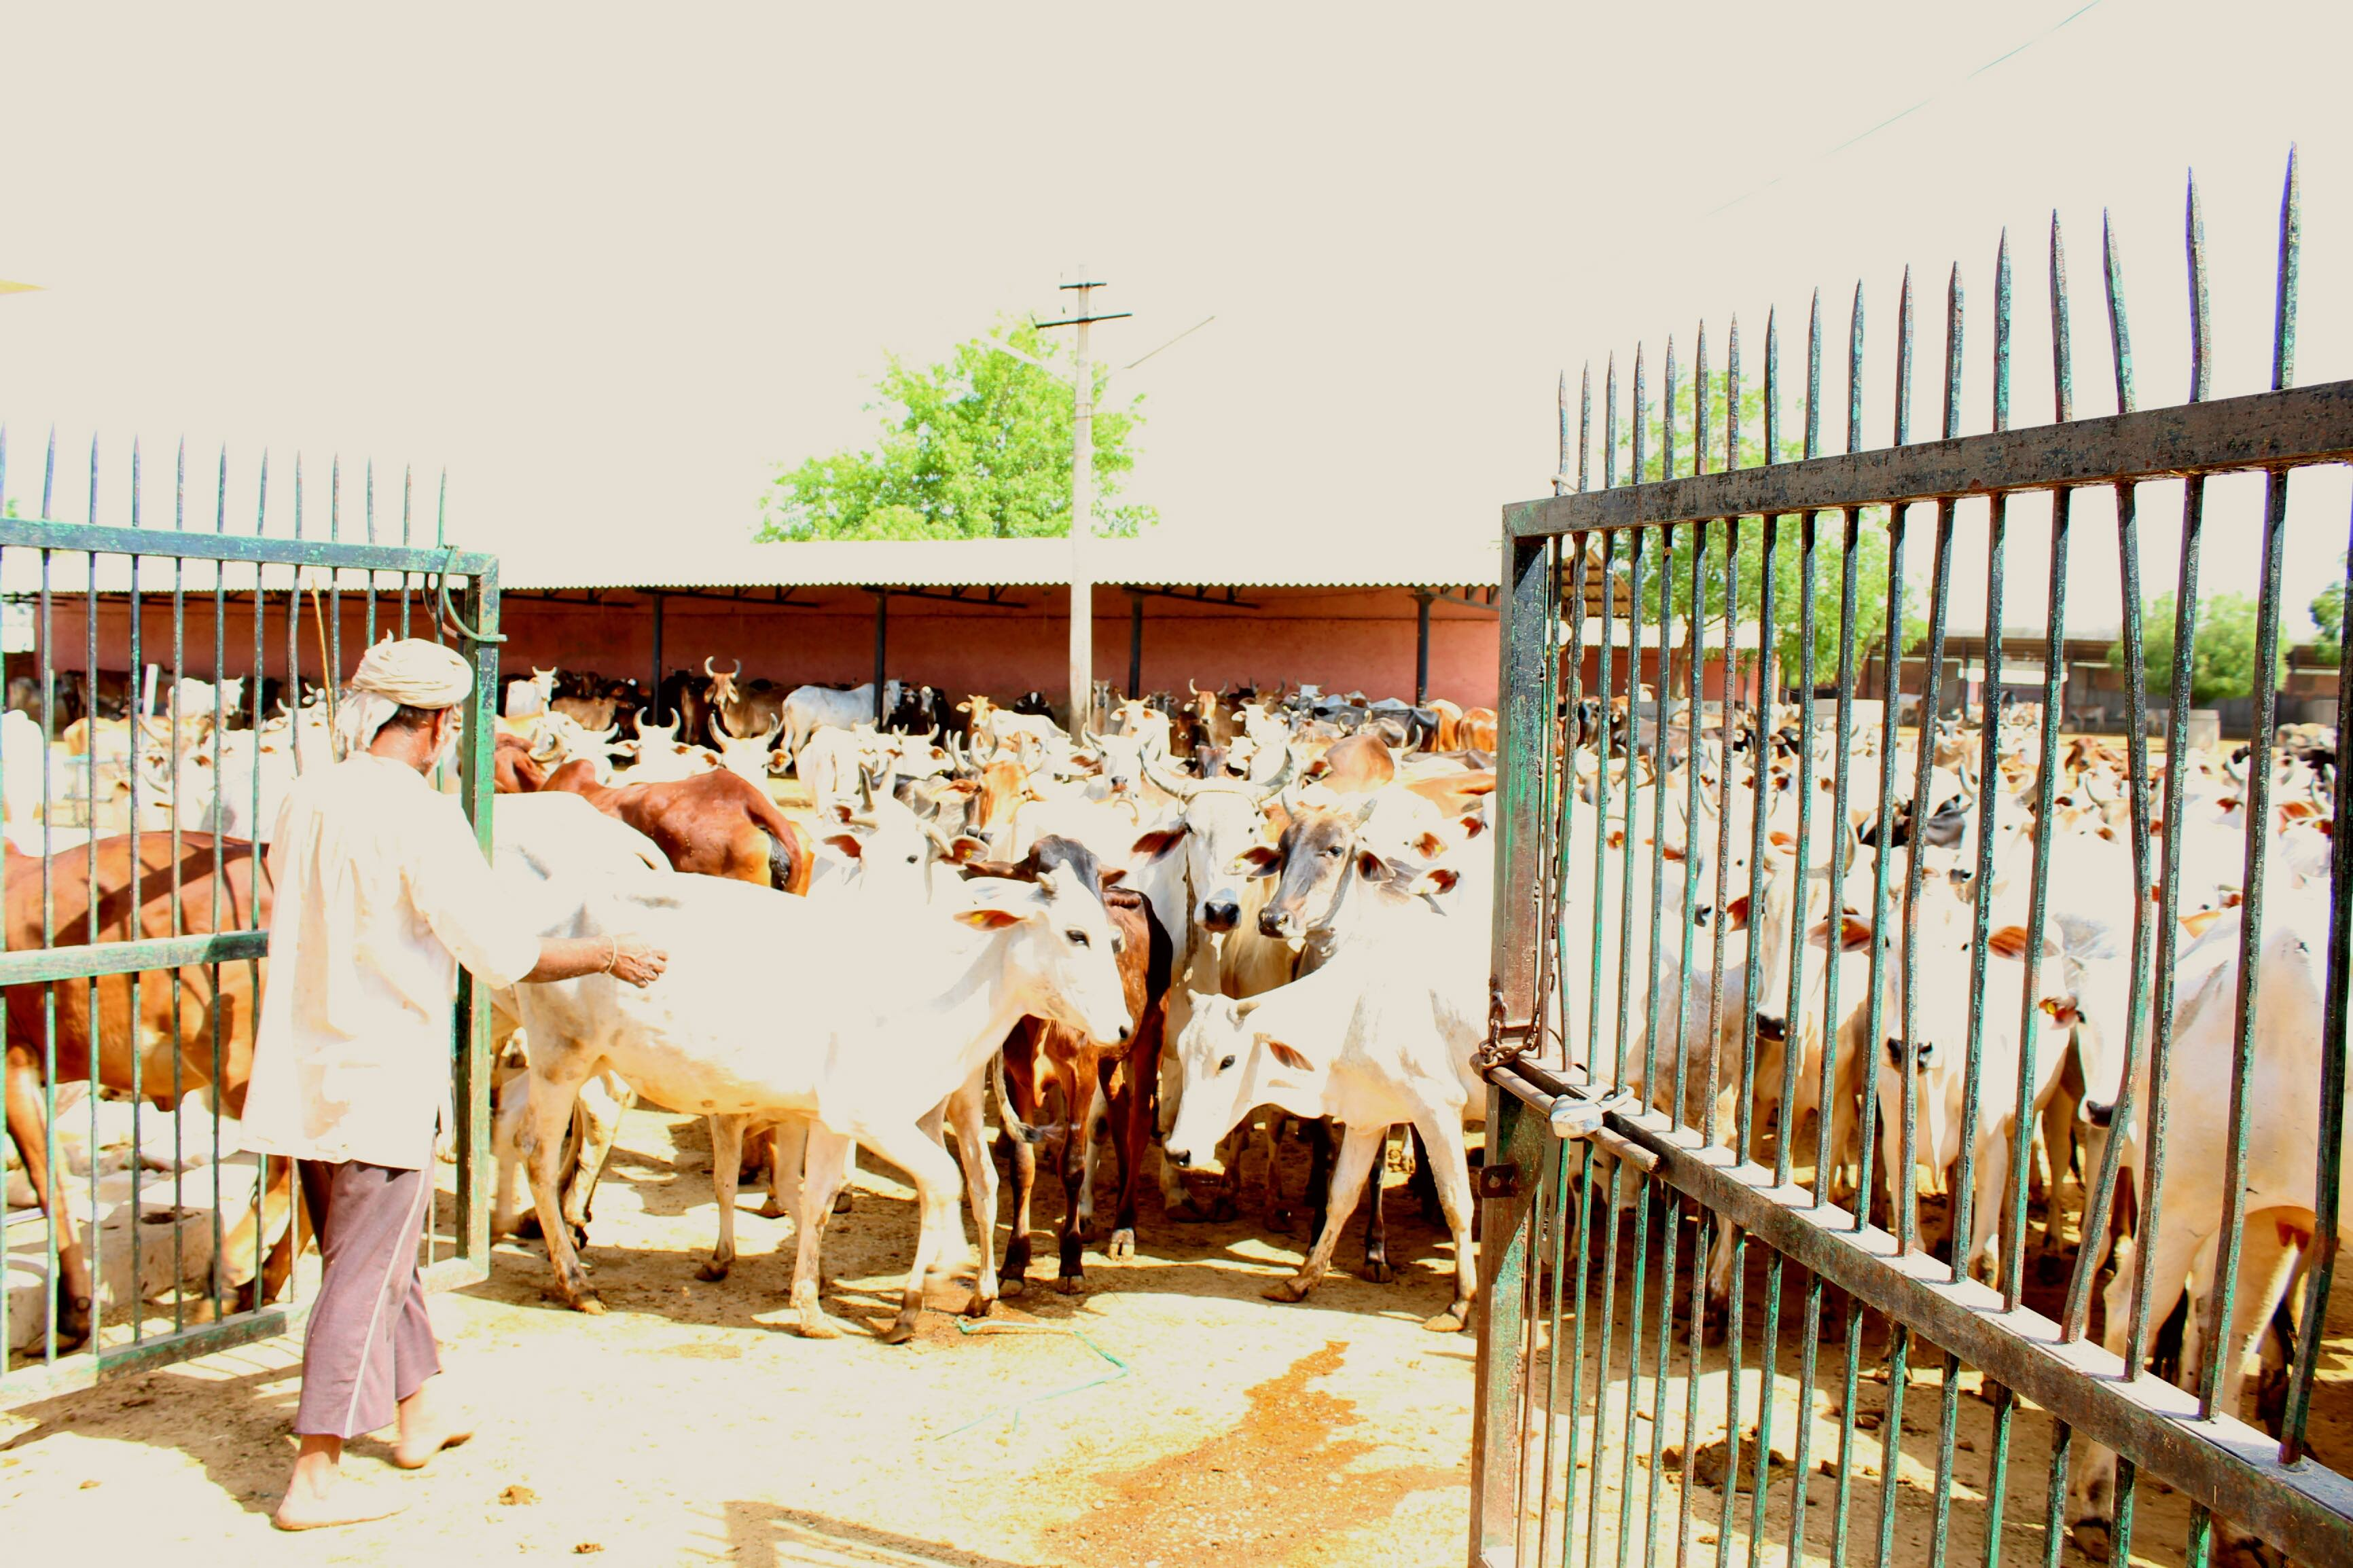 With Jaipur Gaushala in Fund Crunch, Hundreds of Cows Starve to Death